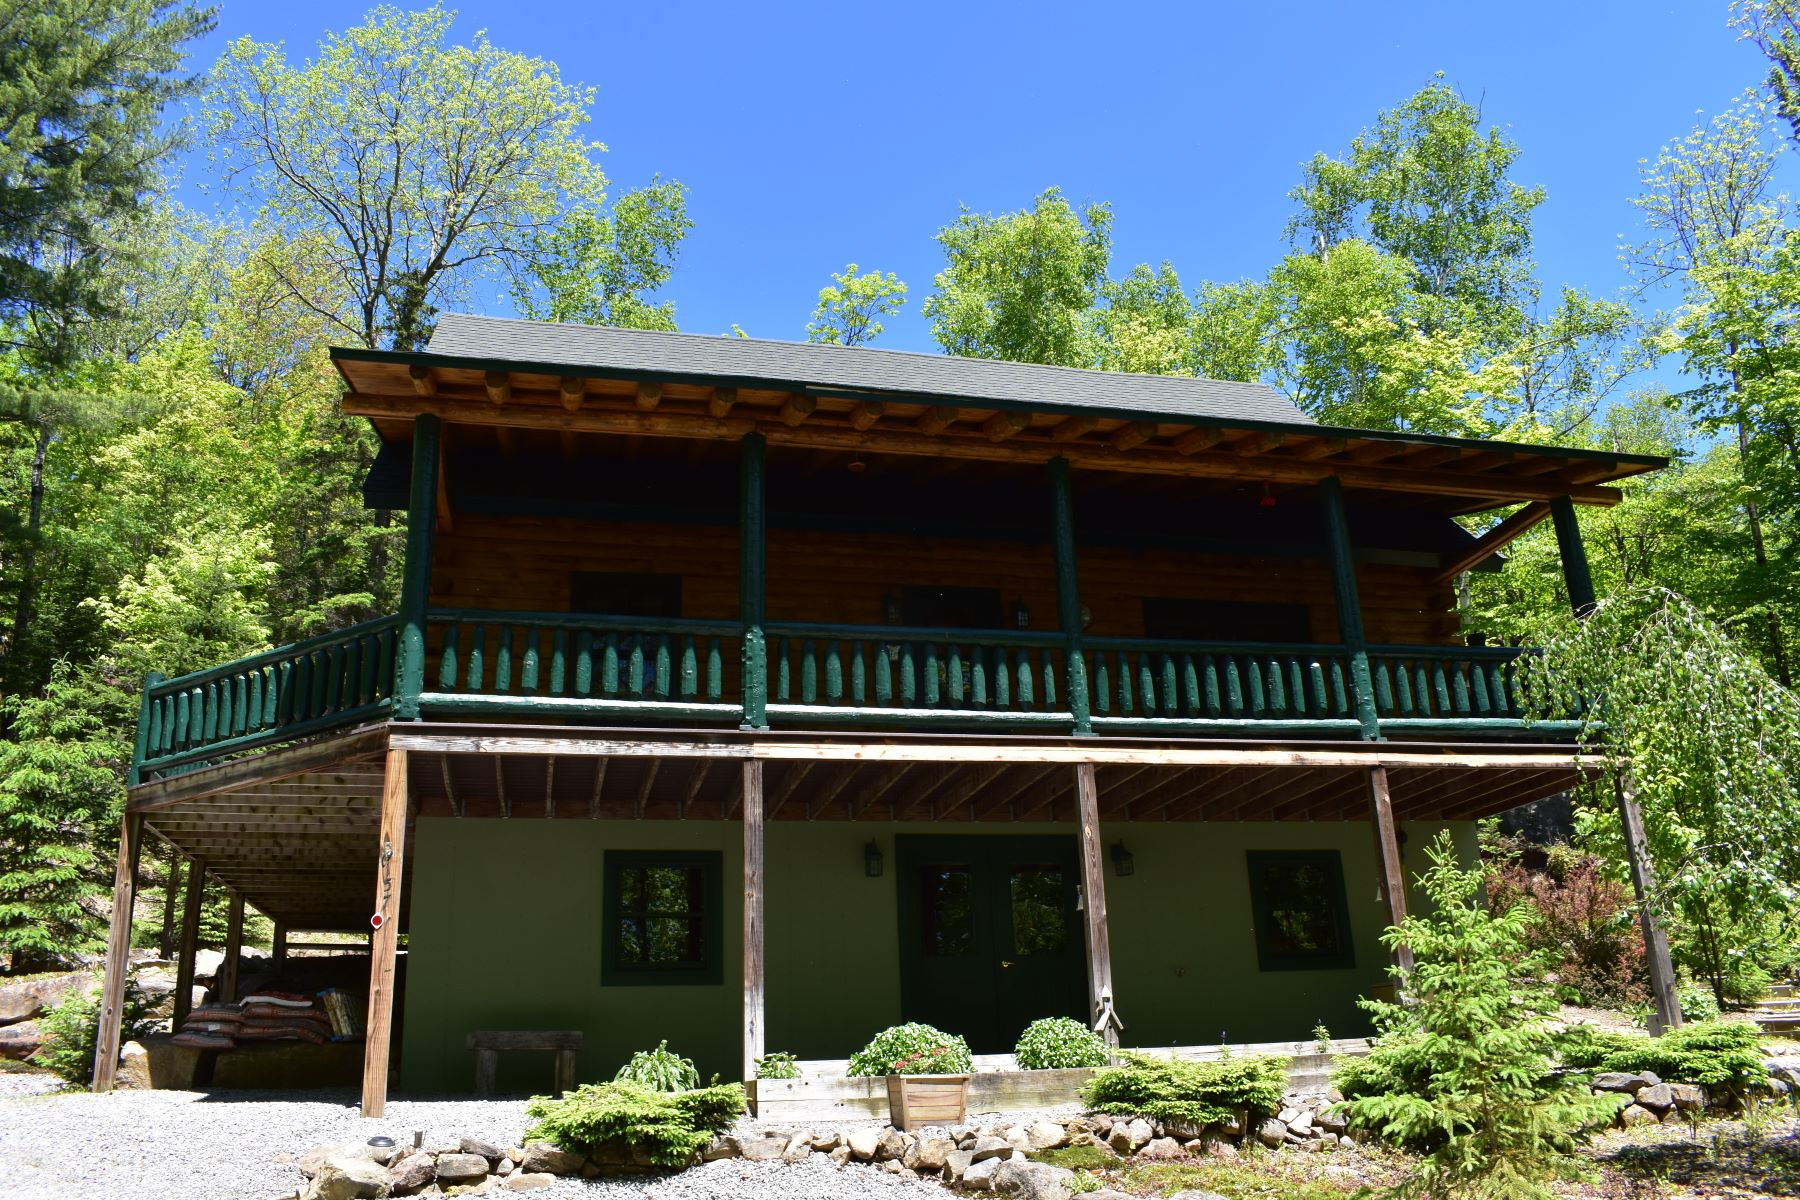 Single Family Homes for Active at Log Cabin on Mountaintop 157 Mountaintop Dr Indian Lake, New York 12842 United States